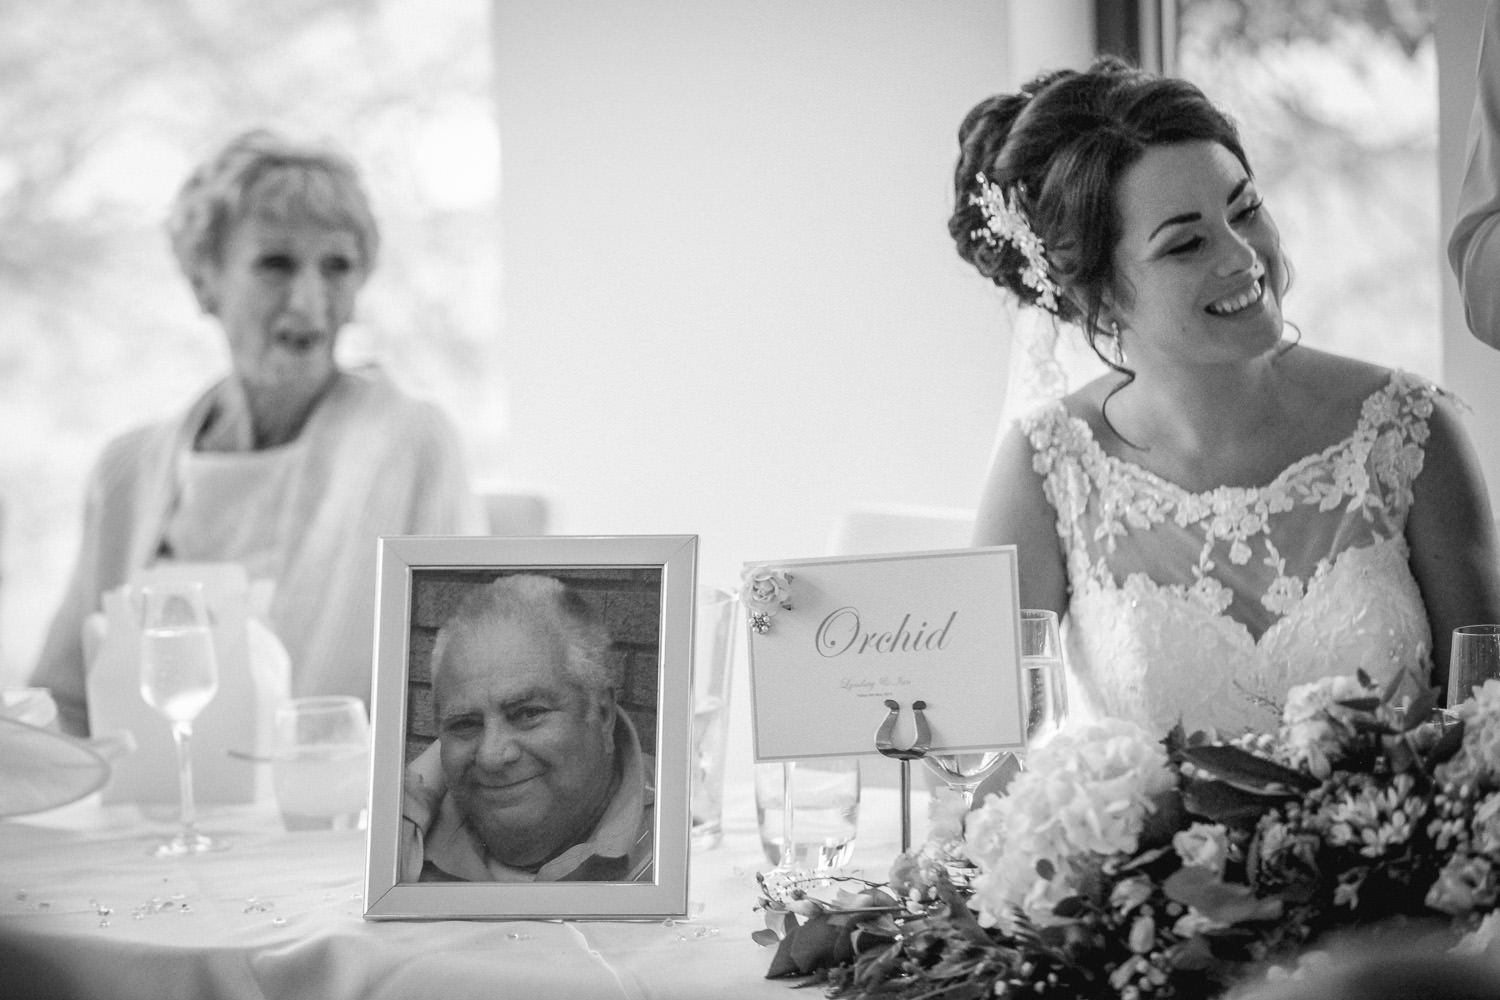 WEST TOWER AUGHTON WEDDING PHOTOGRAPHY: SUMMER WEDDING | Lancashire | west tower aughton